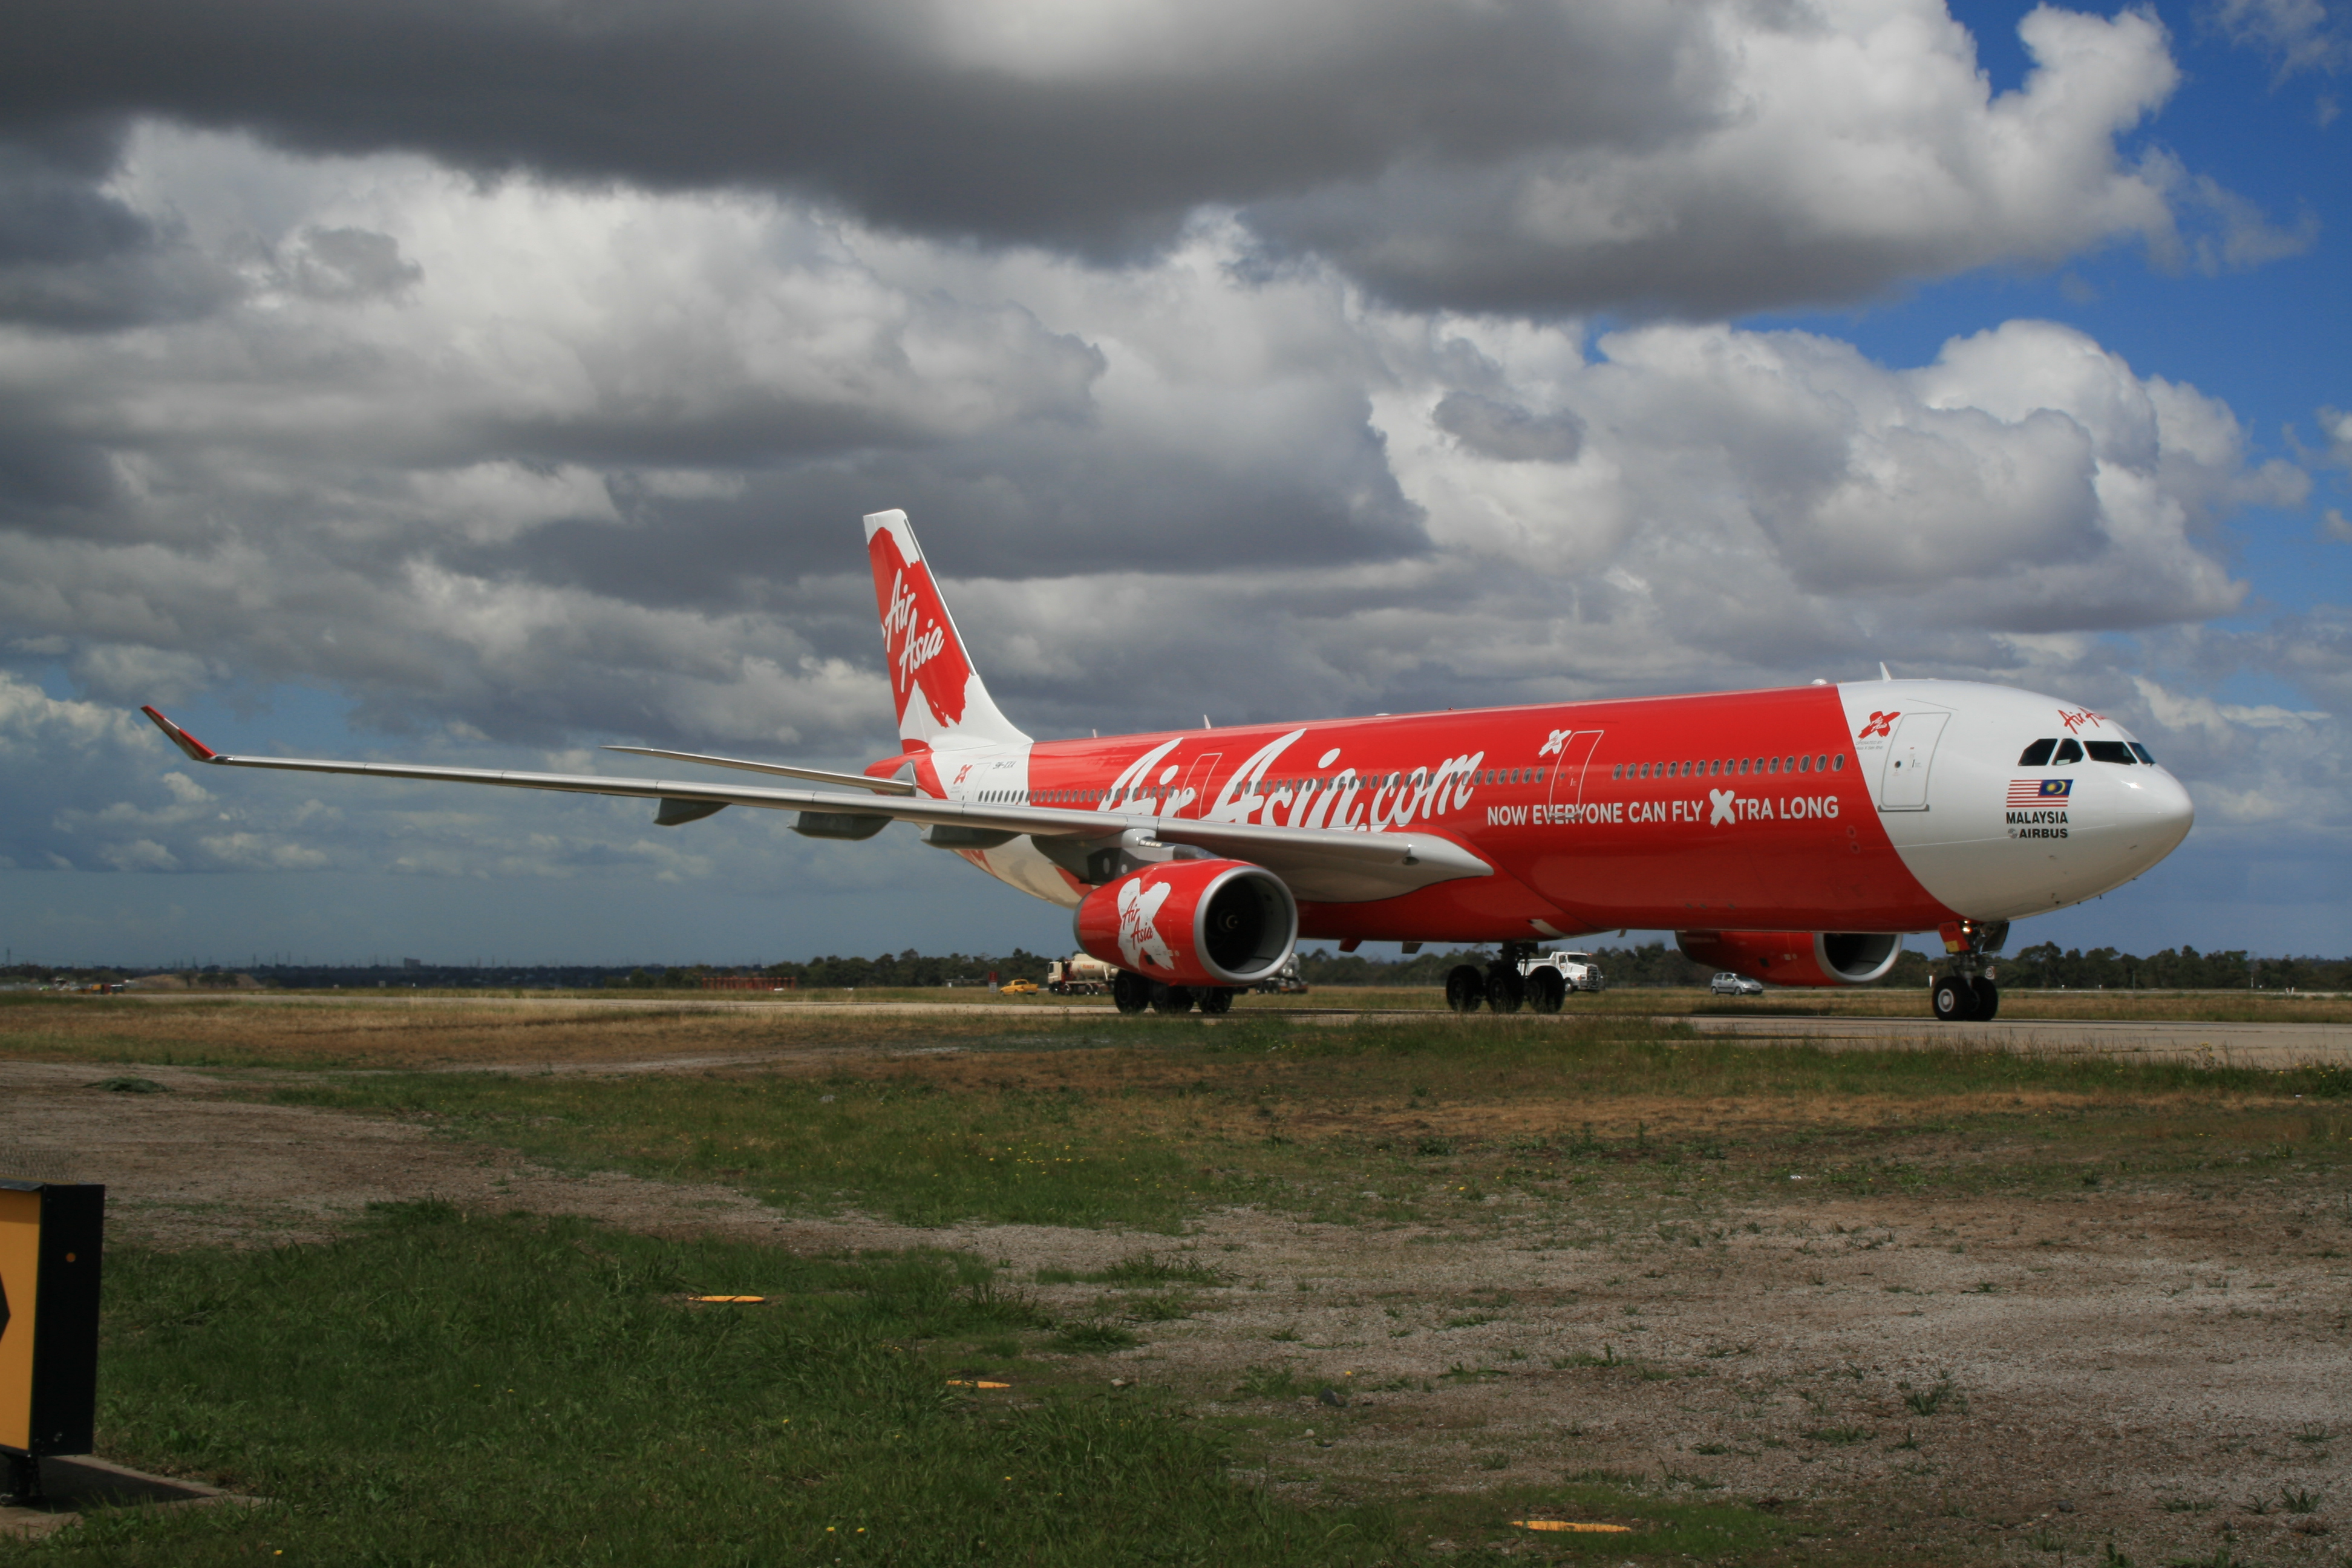 airasia Airasia japan co, ltd (エアアジア・ジャパン株式会社 eāajia japan kabushiki-gaisha) is the name of two incarnations of japanese low-cost airline, operating as a joint venture between airasia of malaysia and japanese partners.